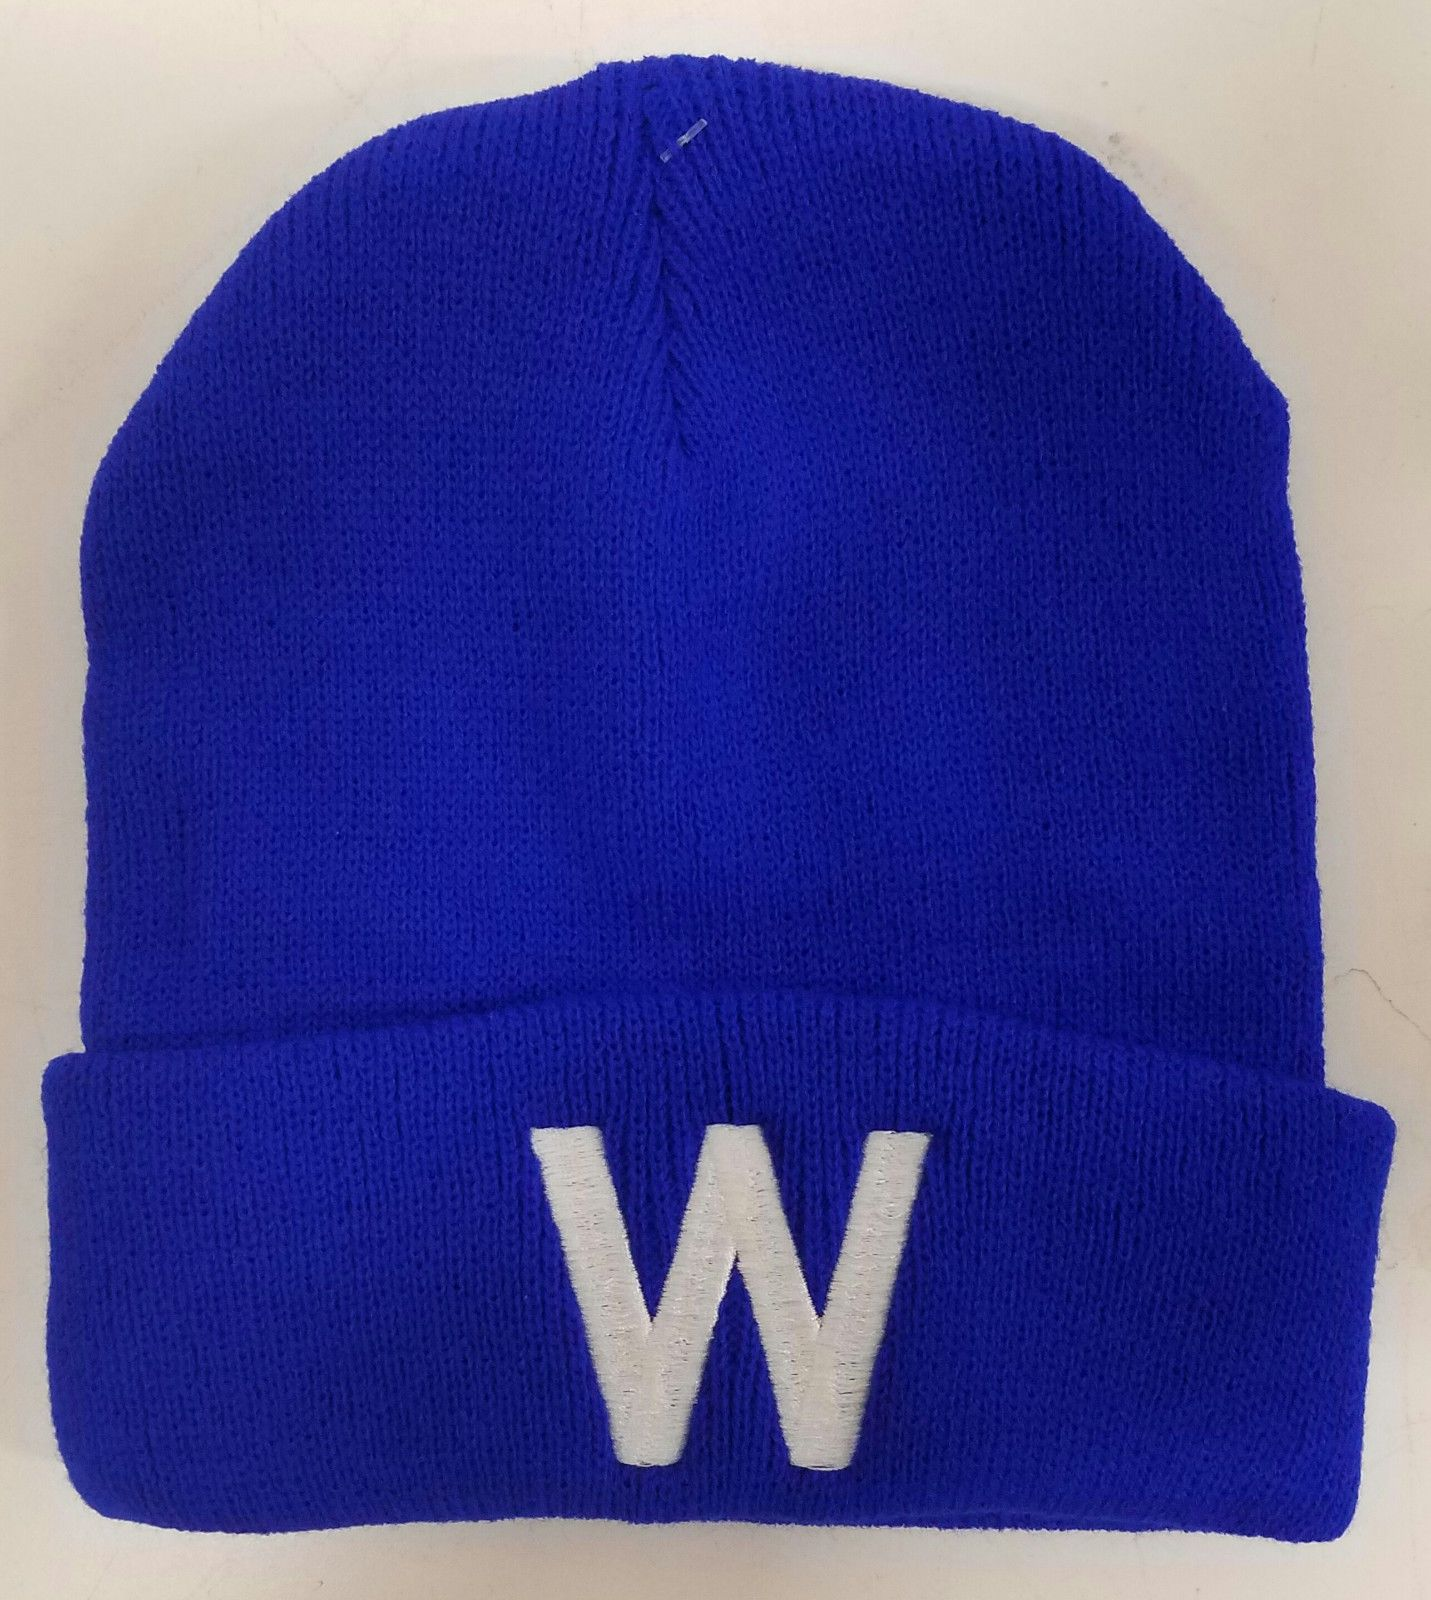 12.59 - Chicago Cubs Blue - W Winter Skull Hat W   Cubs Win  ebay   Collectibles ea85dbda213